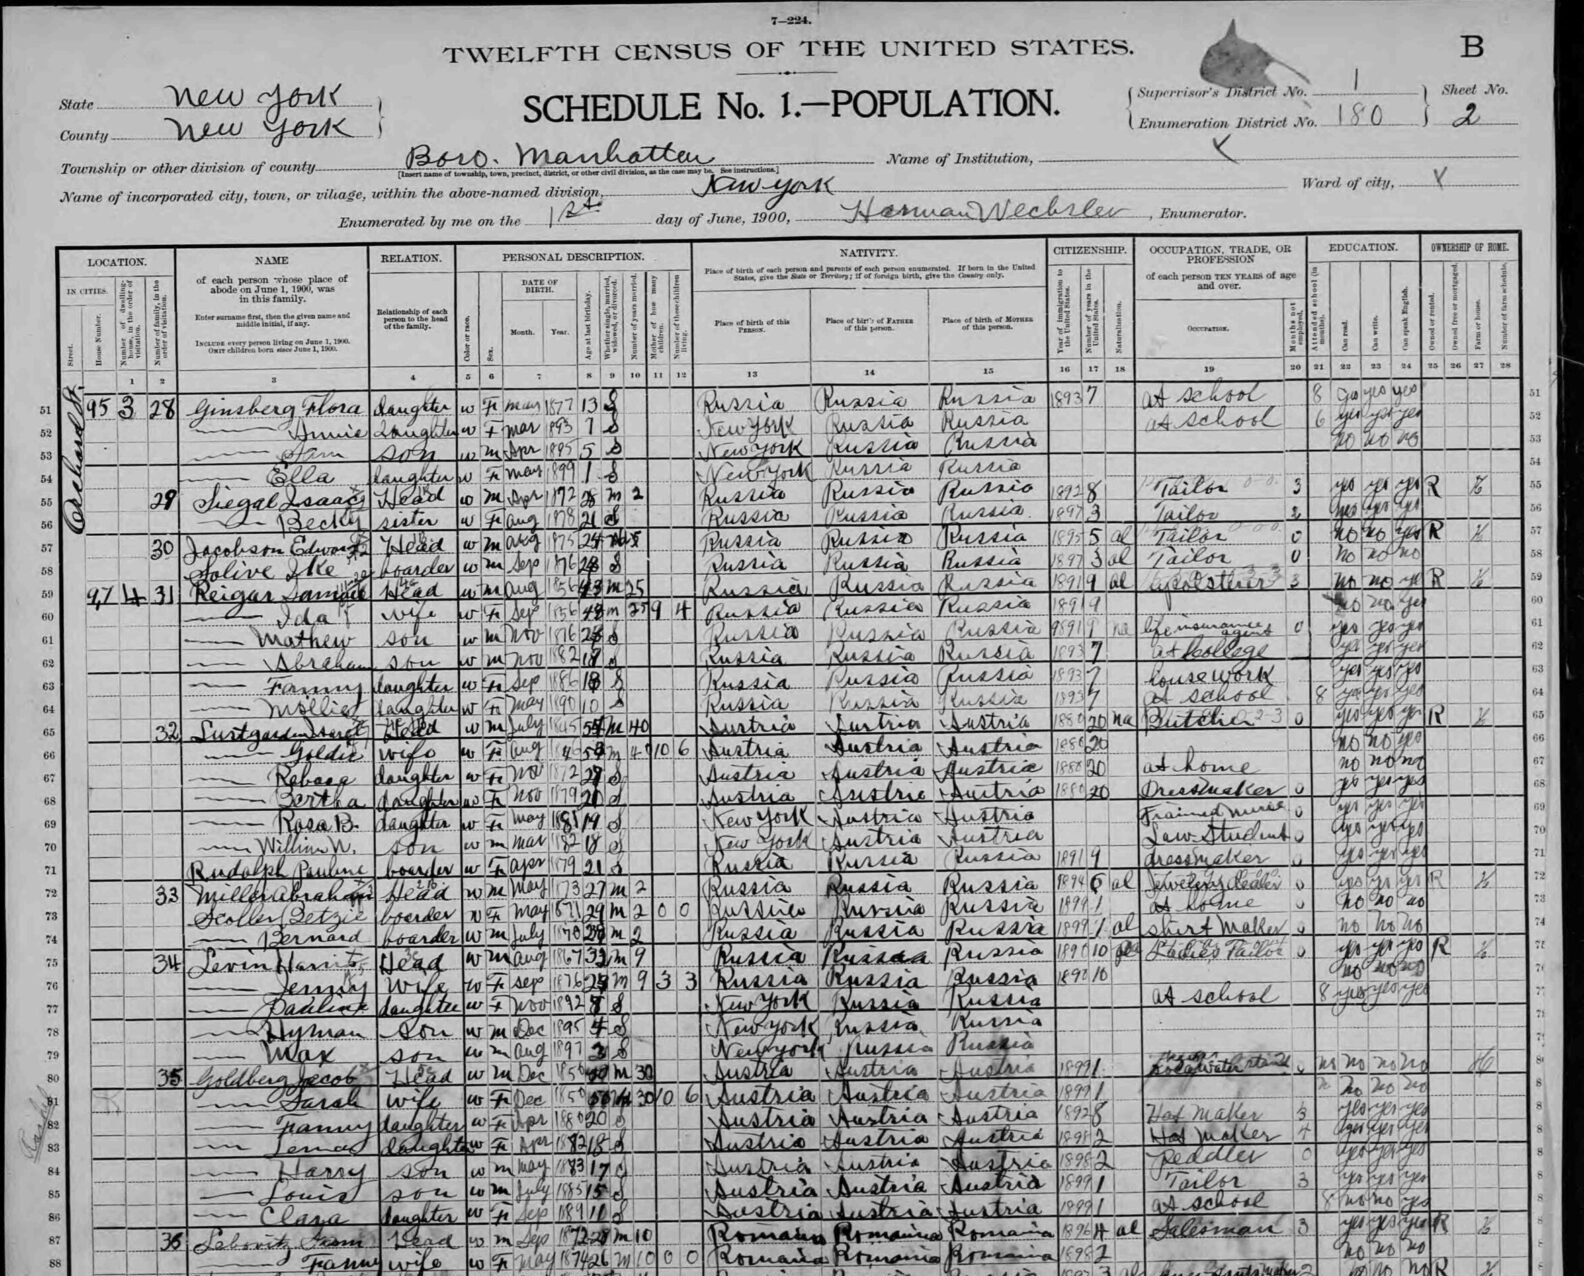 Scan of the 1900 census of Manhattan with rows of resident names and other information written in script